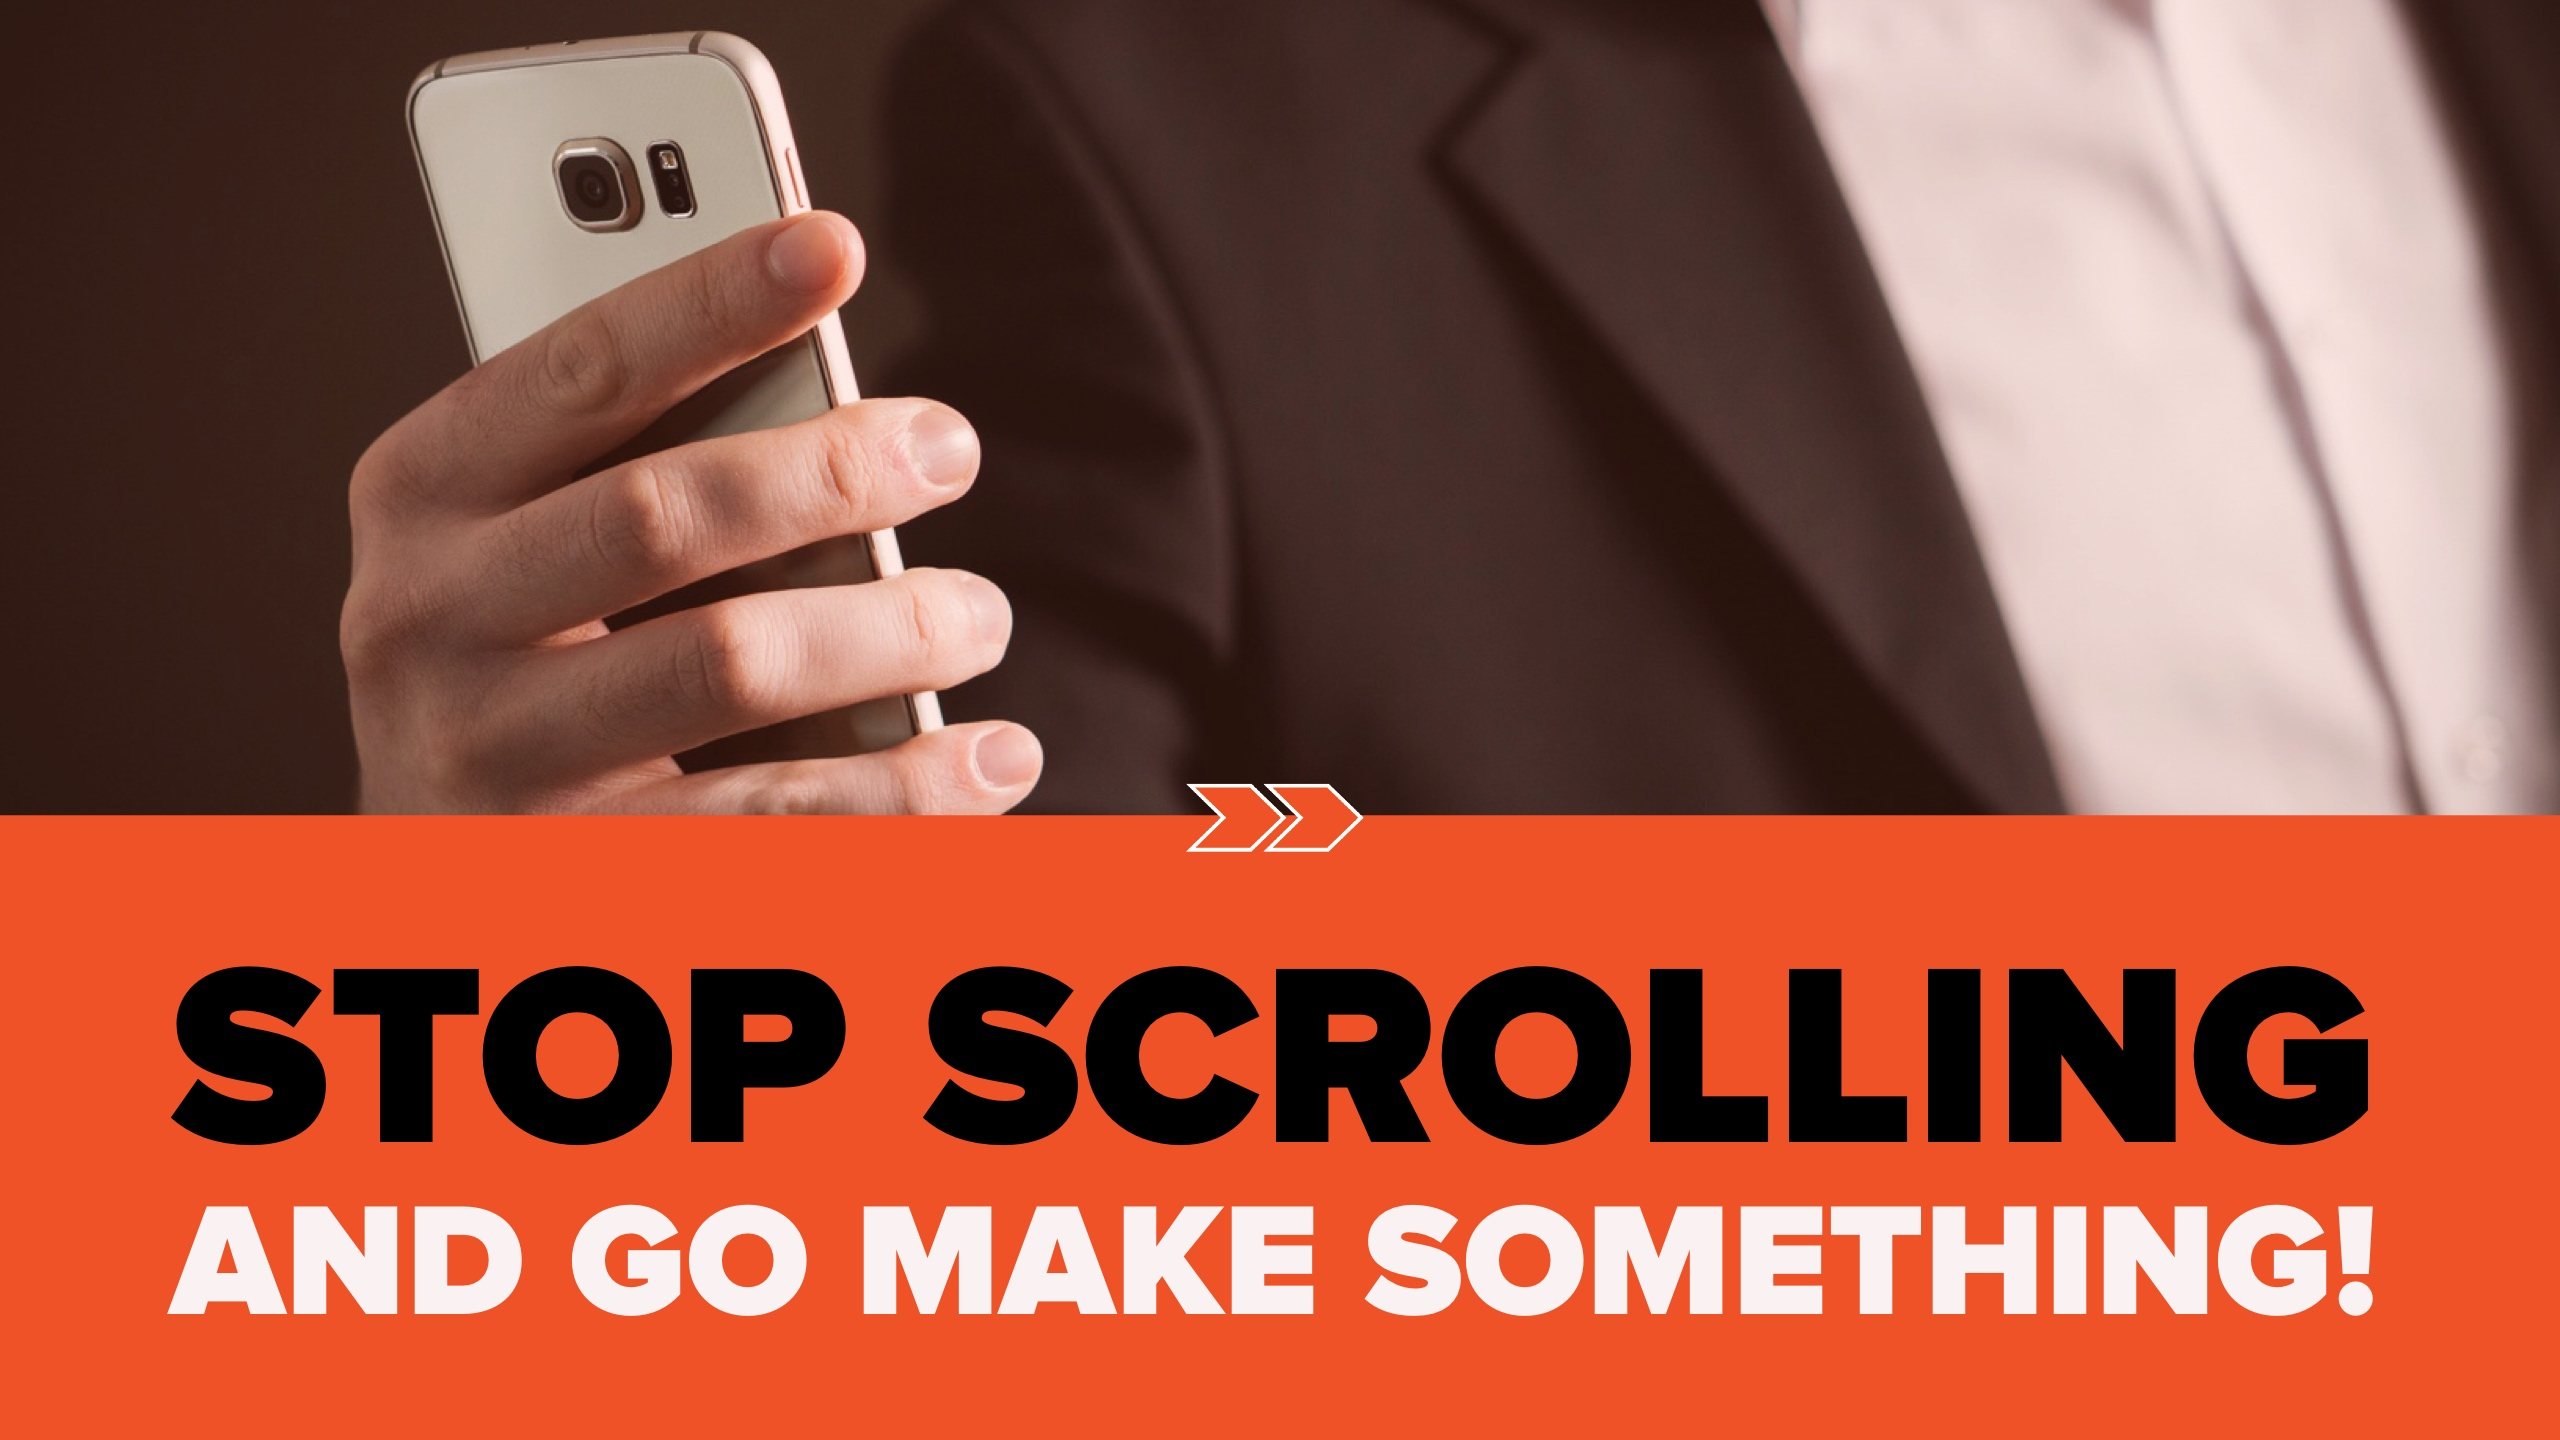 Stop Scrolling and Go Make Something